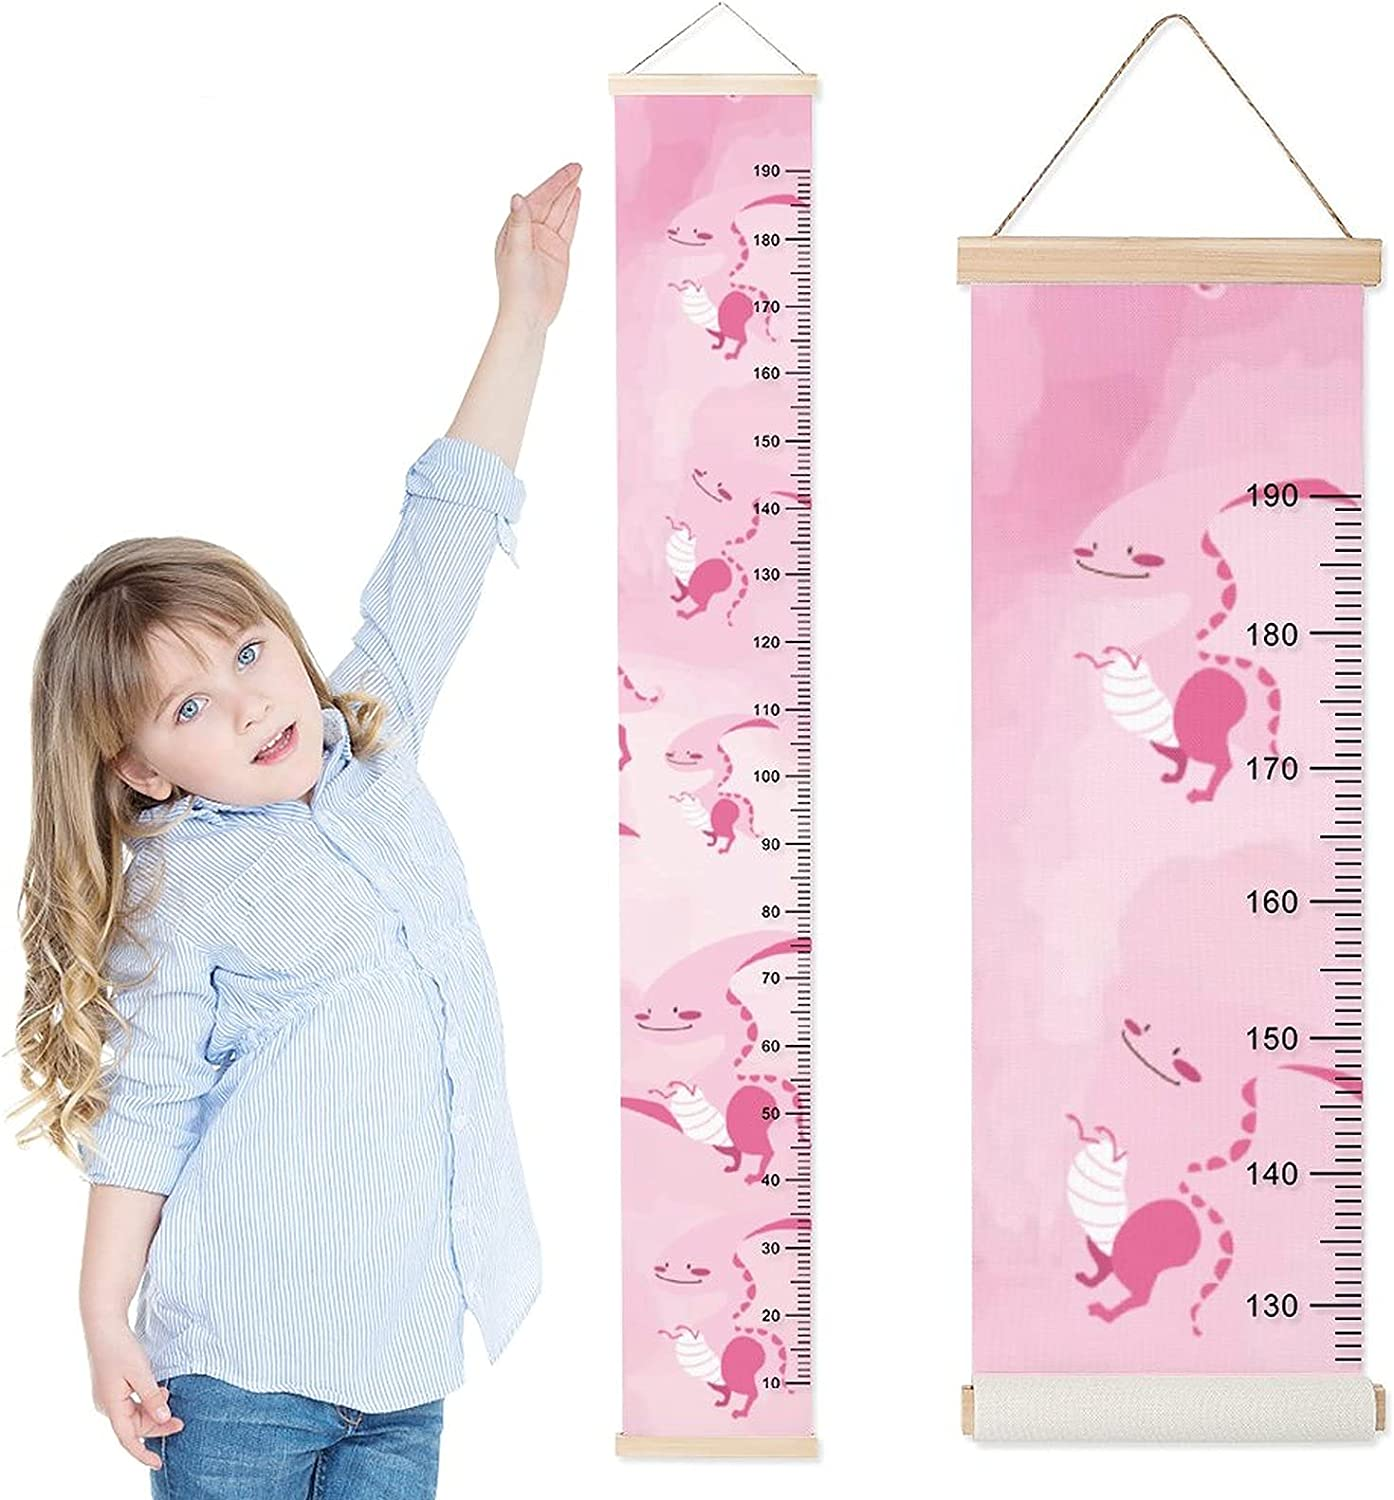 DKISEE Baby Growth Chart Child Ruler Indefinitely Free Shipping Cheap Bargain Gift Wall f Hanging Height